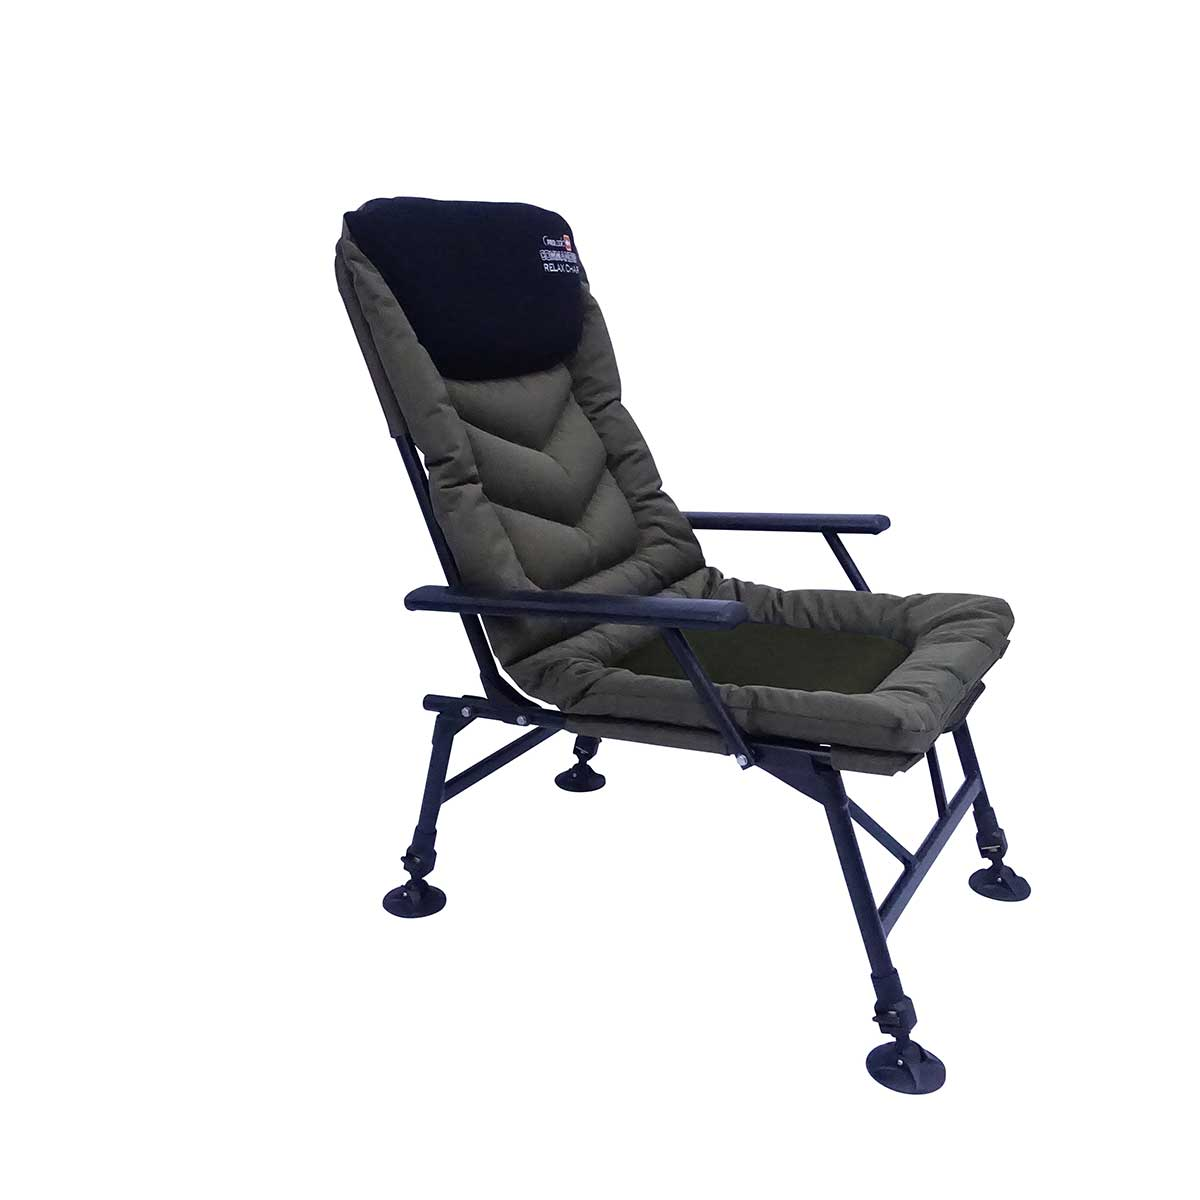 korda chair accessories taupe covers buyer s guide to fishing chairs angling times 54335 pl commander travel jpg